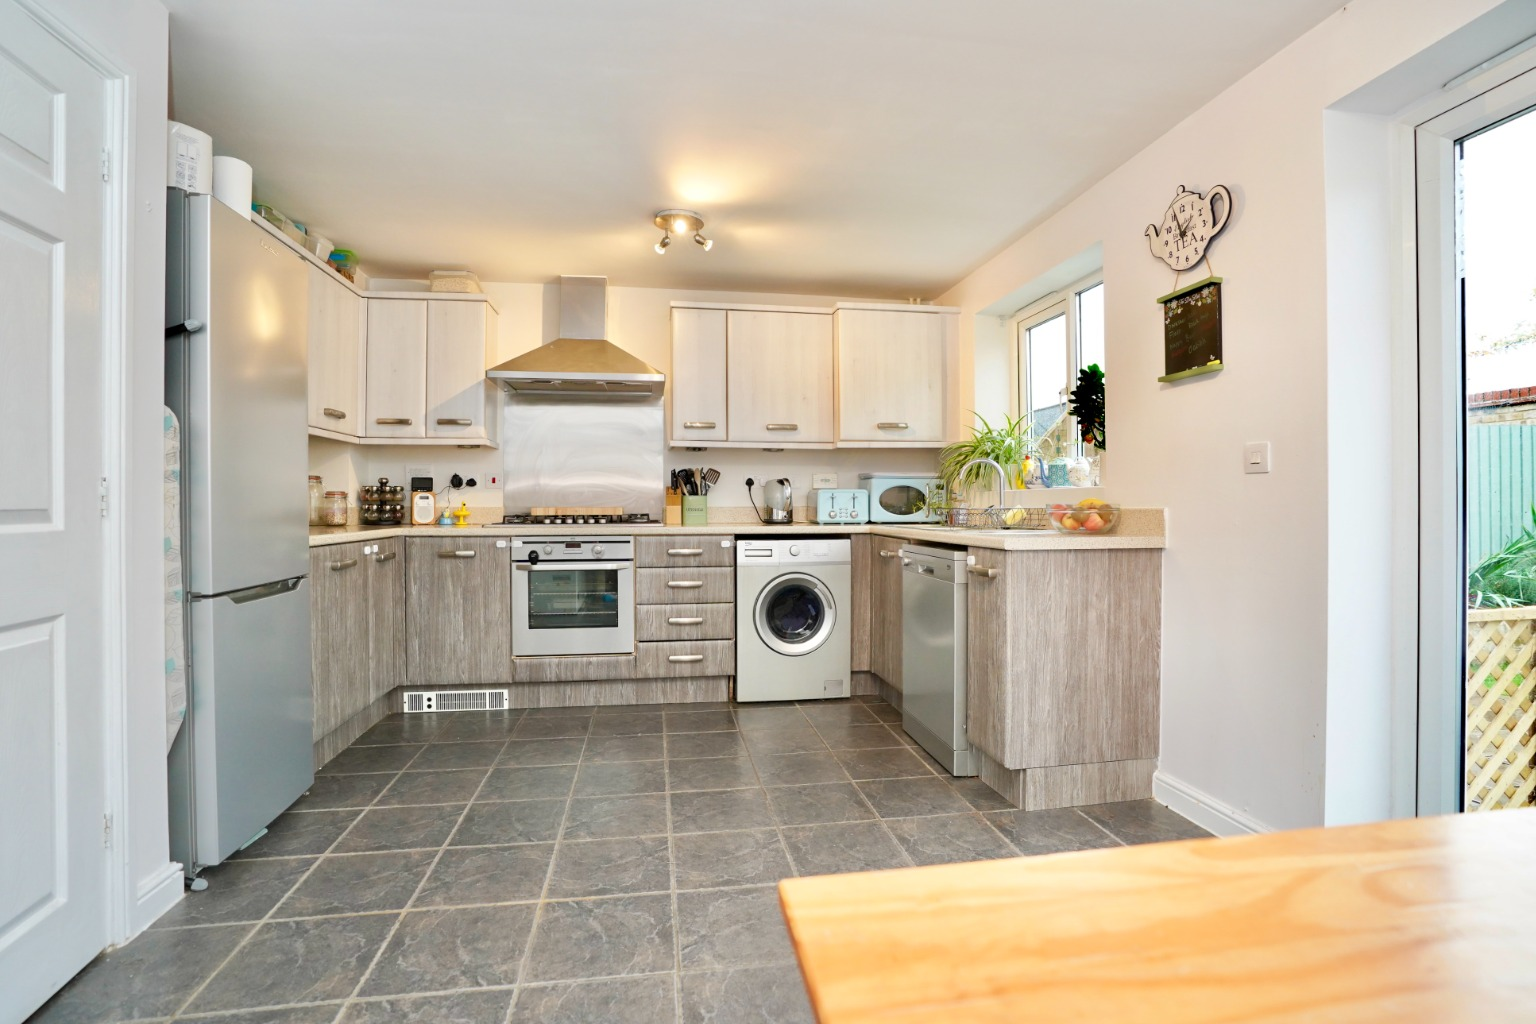 3 bed end of terrace house for sale in Stone Hill, Cambridgeshire  - Property Image 3